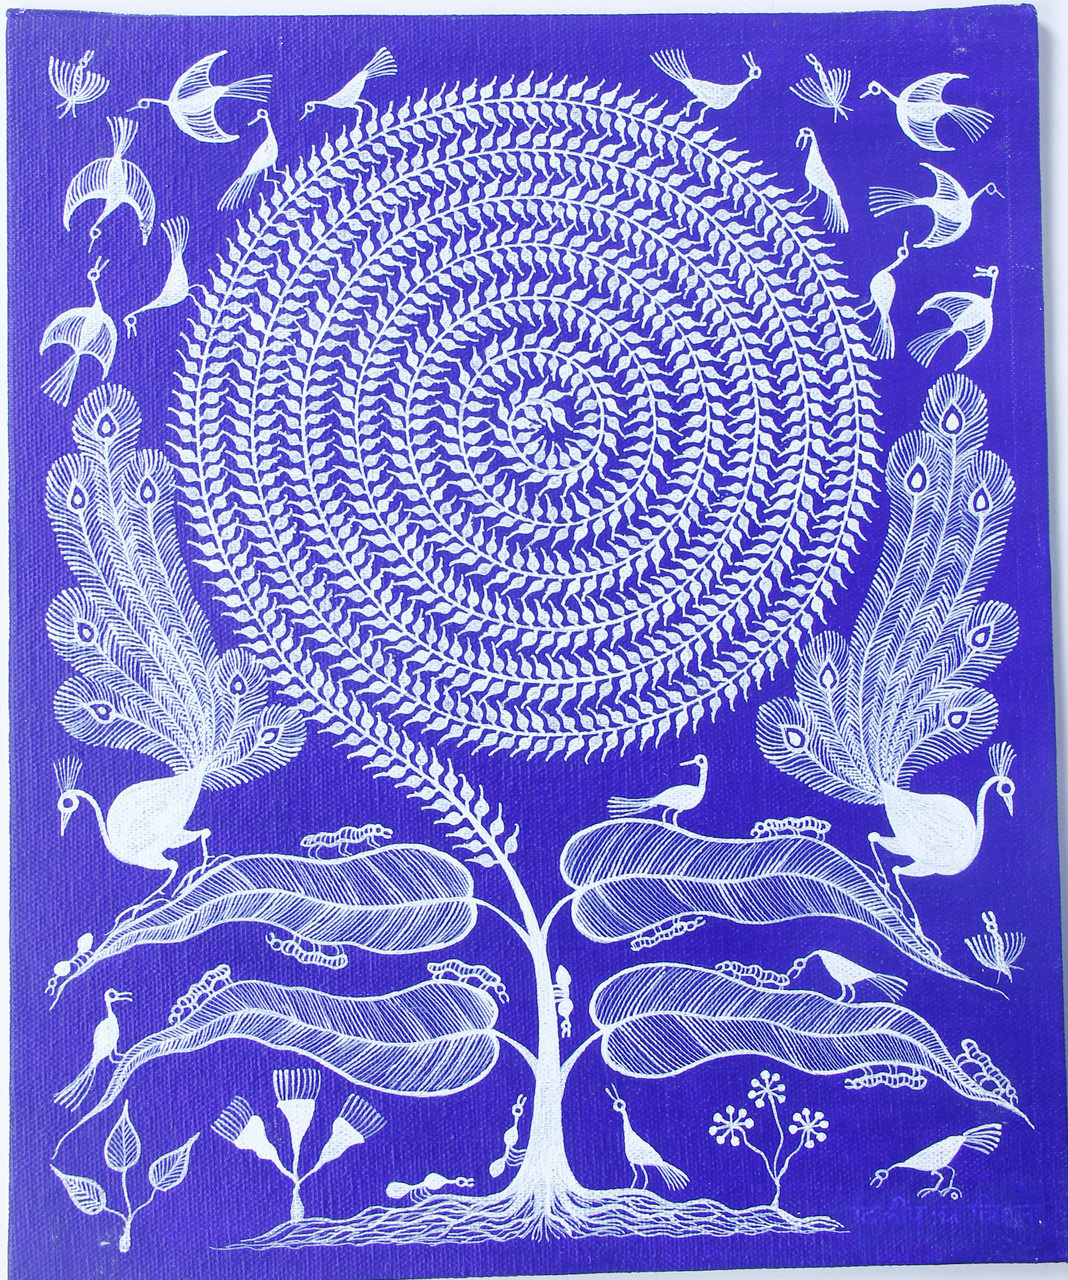 Buy Tribal Warli Painting Indian Traditional Painting Tribal Sunflower Handmade Painting By Anavita Artistry Studios Private Limited Code Art 7213 45184 Paintings For Sale Online In India